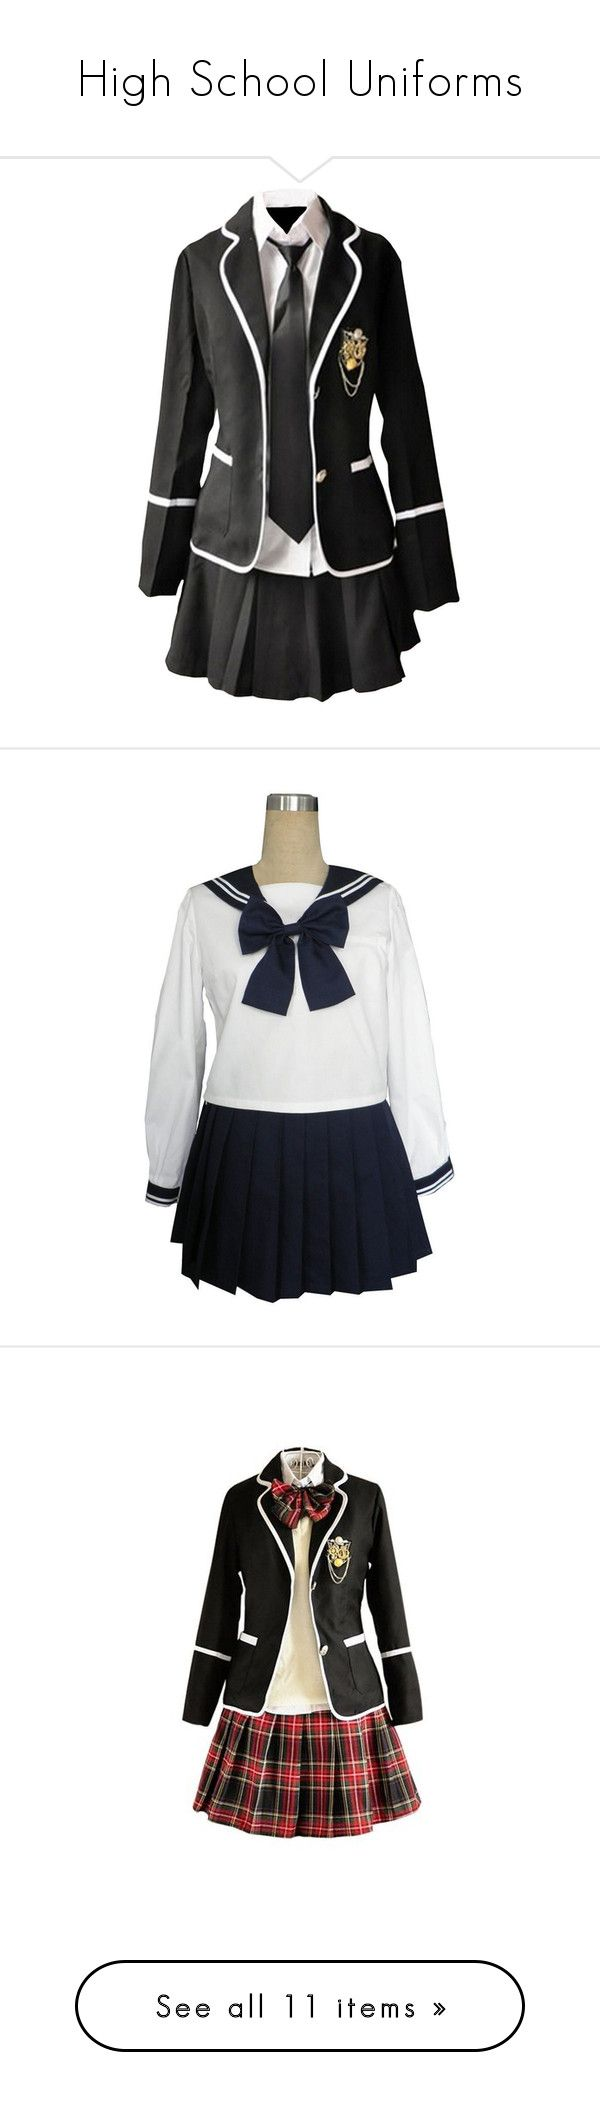 """""""High School Uniforms"""" by susanaxalex ❤ liked on Polyvore featuring dresses, uniform, outfits, school, costumes, skirts, cosplay, adult halloween costumes, cosplay halloween costumes and adult sailor costume"""